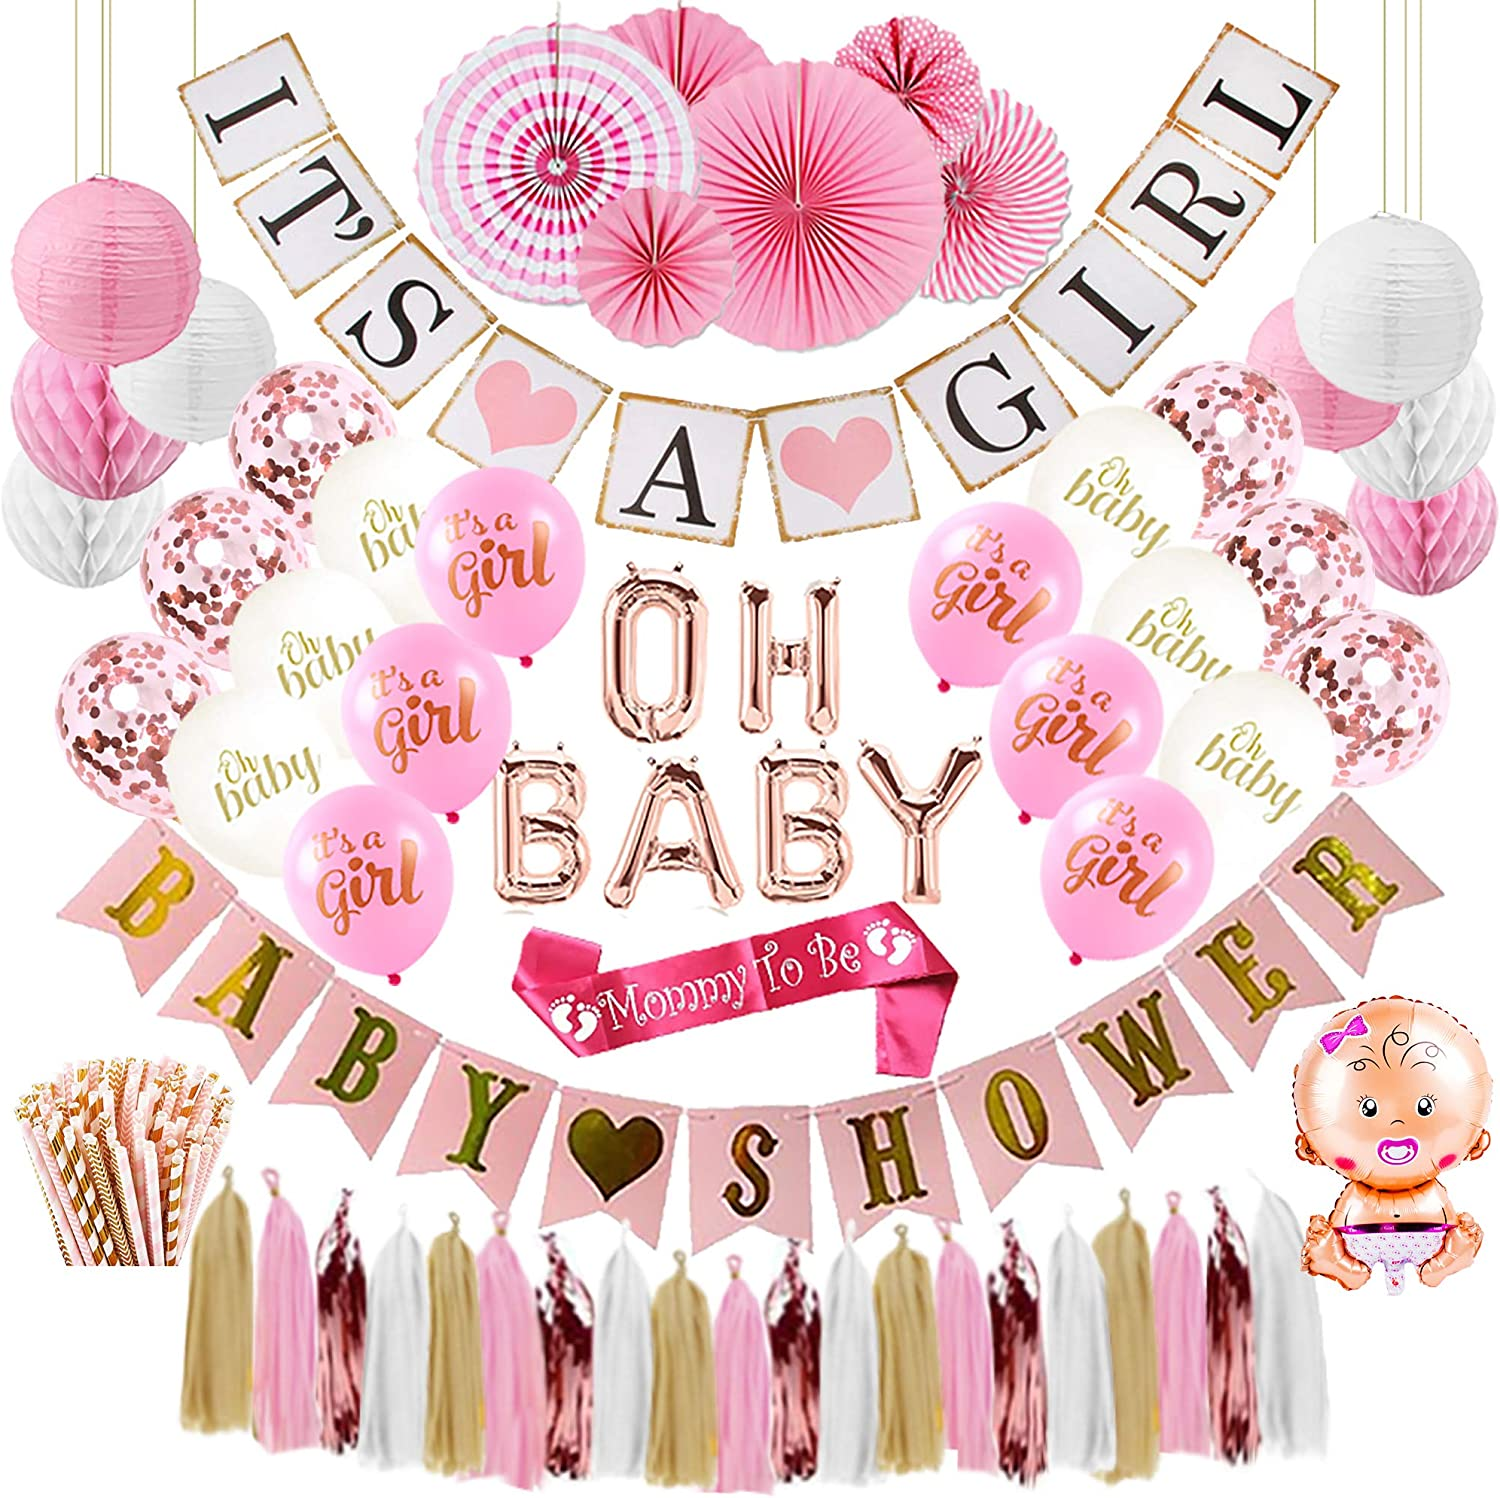 Baby Shower Decorations for Girl, Easy To Put Together Baby Shower Decor with Pink Party Decorations, Baby Shower Balloons, Mommy to Be Sash, Paper Straws, Its a Girl Banner, and More Party Supplies